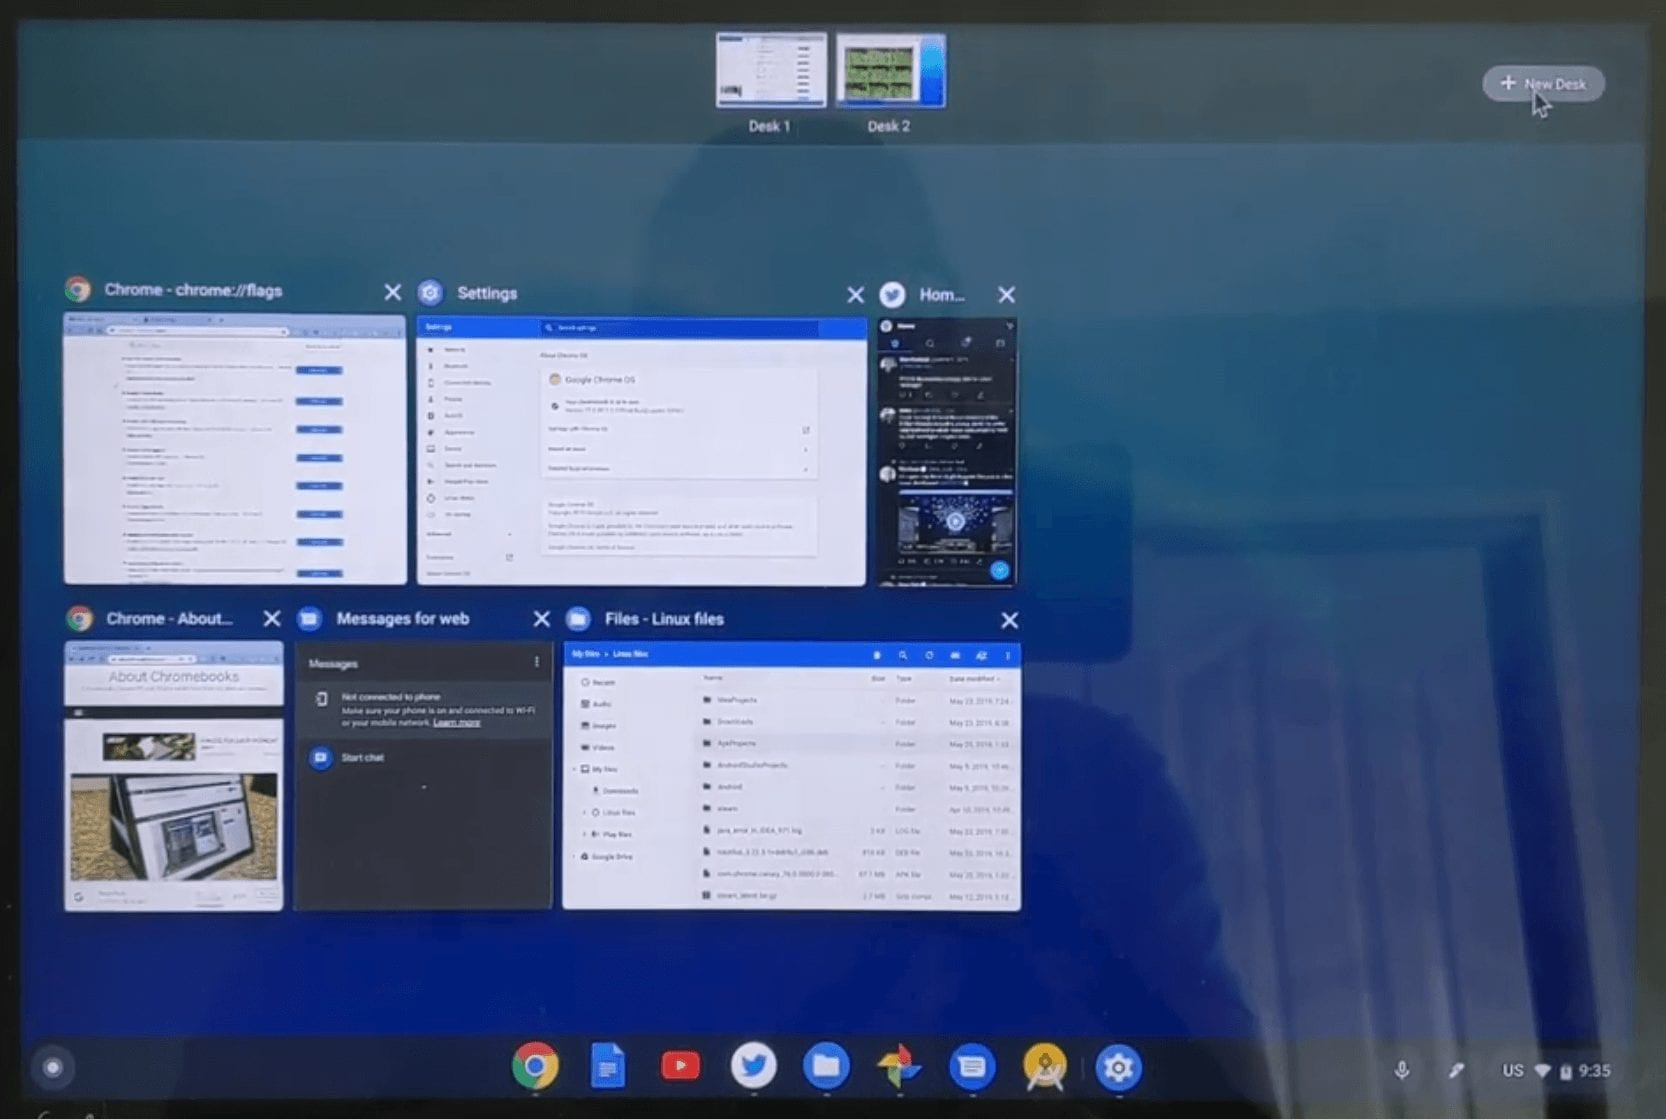 Chrome OS 77: First look at Virtual Desks on a Chromebook